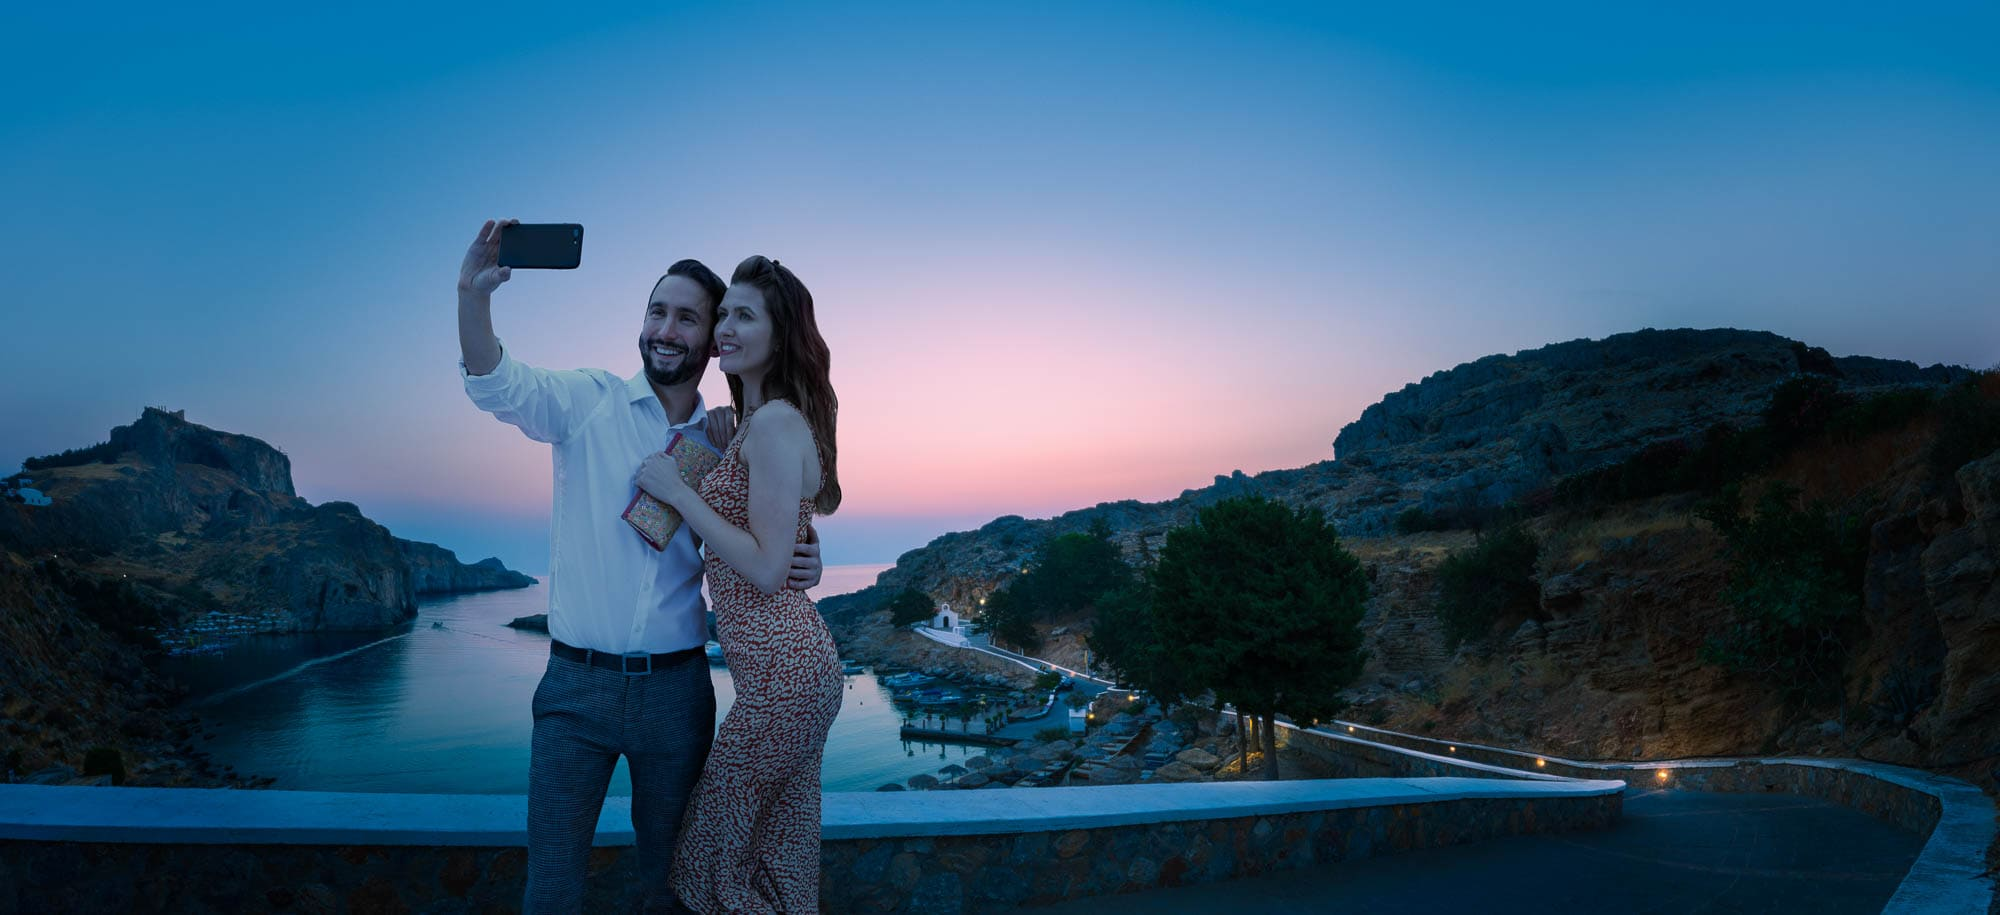 Lifestyle-advertising-photography-a-walk-before-dinner-rhodes-greece